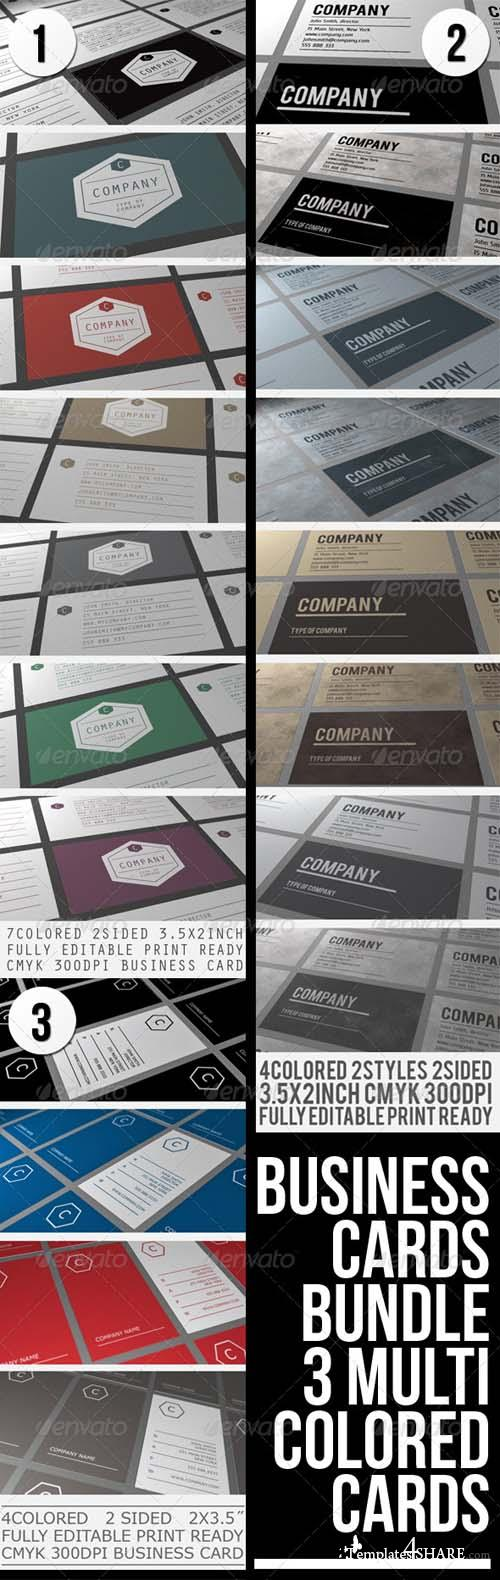 Graphicriver BUSINESS CARDS BUNDLE